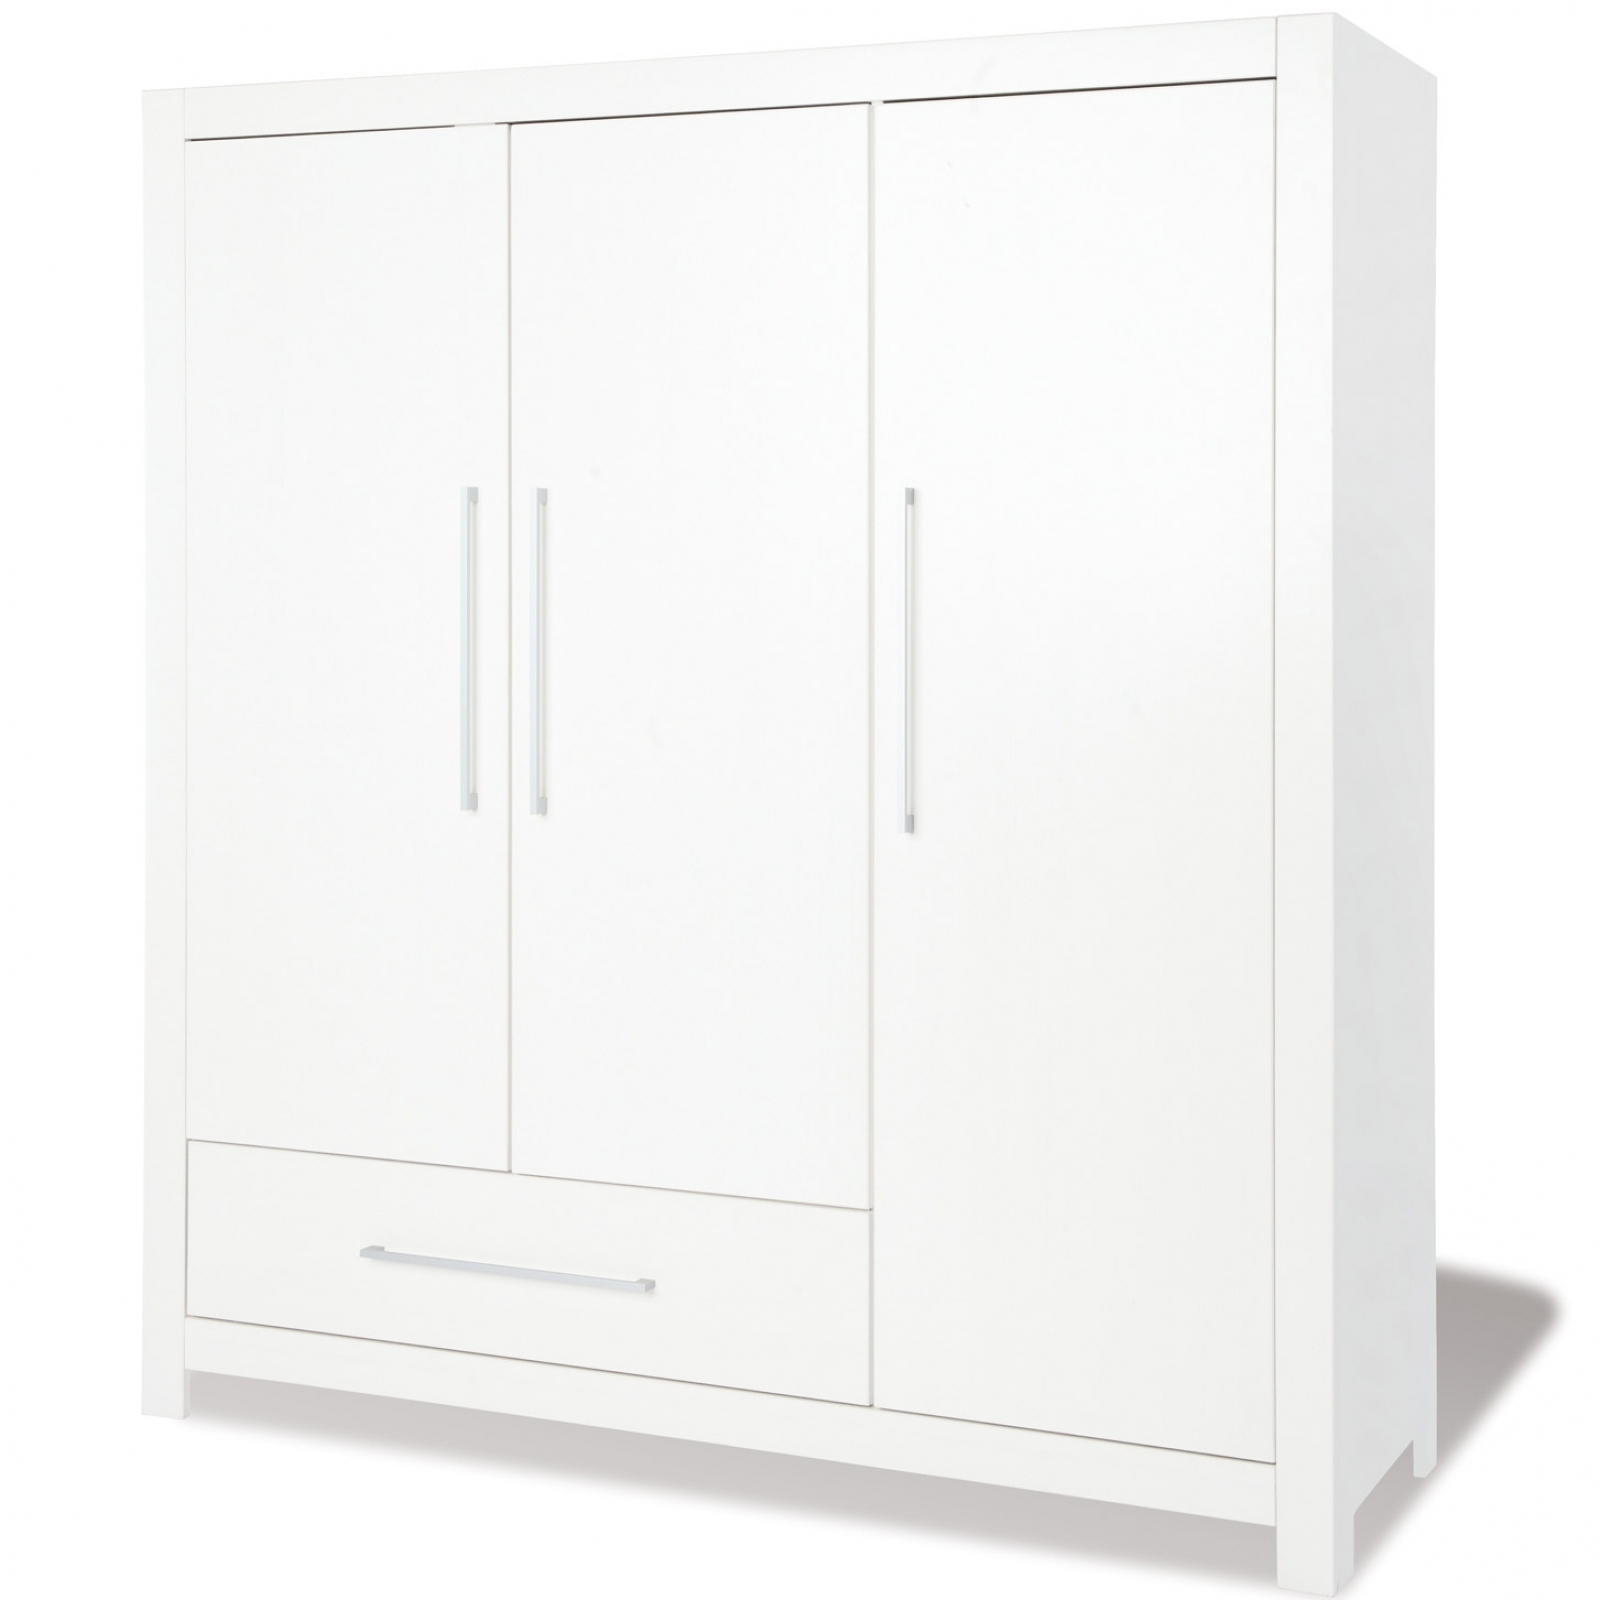 armoire pin massif blanc maison design. Black Bedroom Furniture Sets. Home Design Ideas